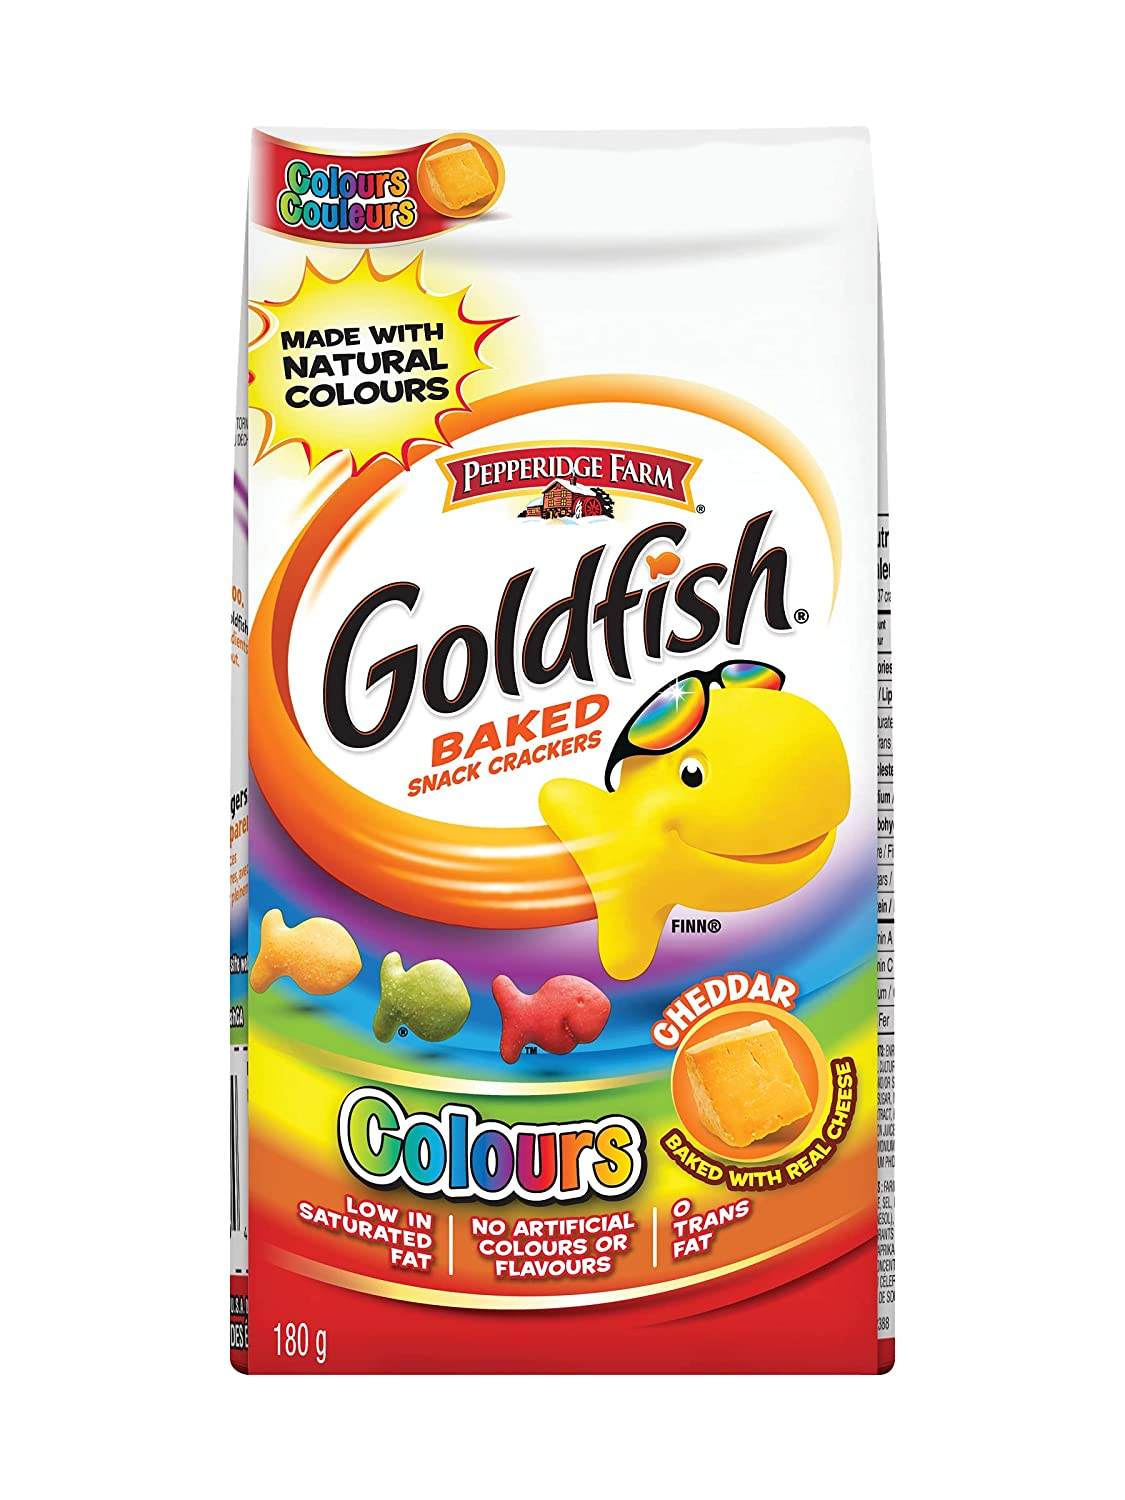 Pepperidge Farm Goldfish Crackers Colours 6.3 NEW Complete Free Shipping Imported oz 180g